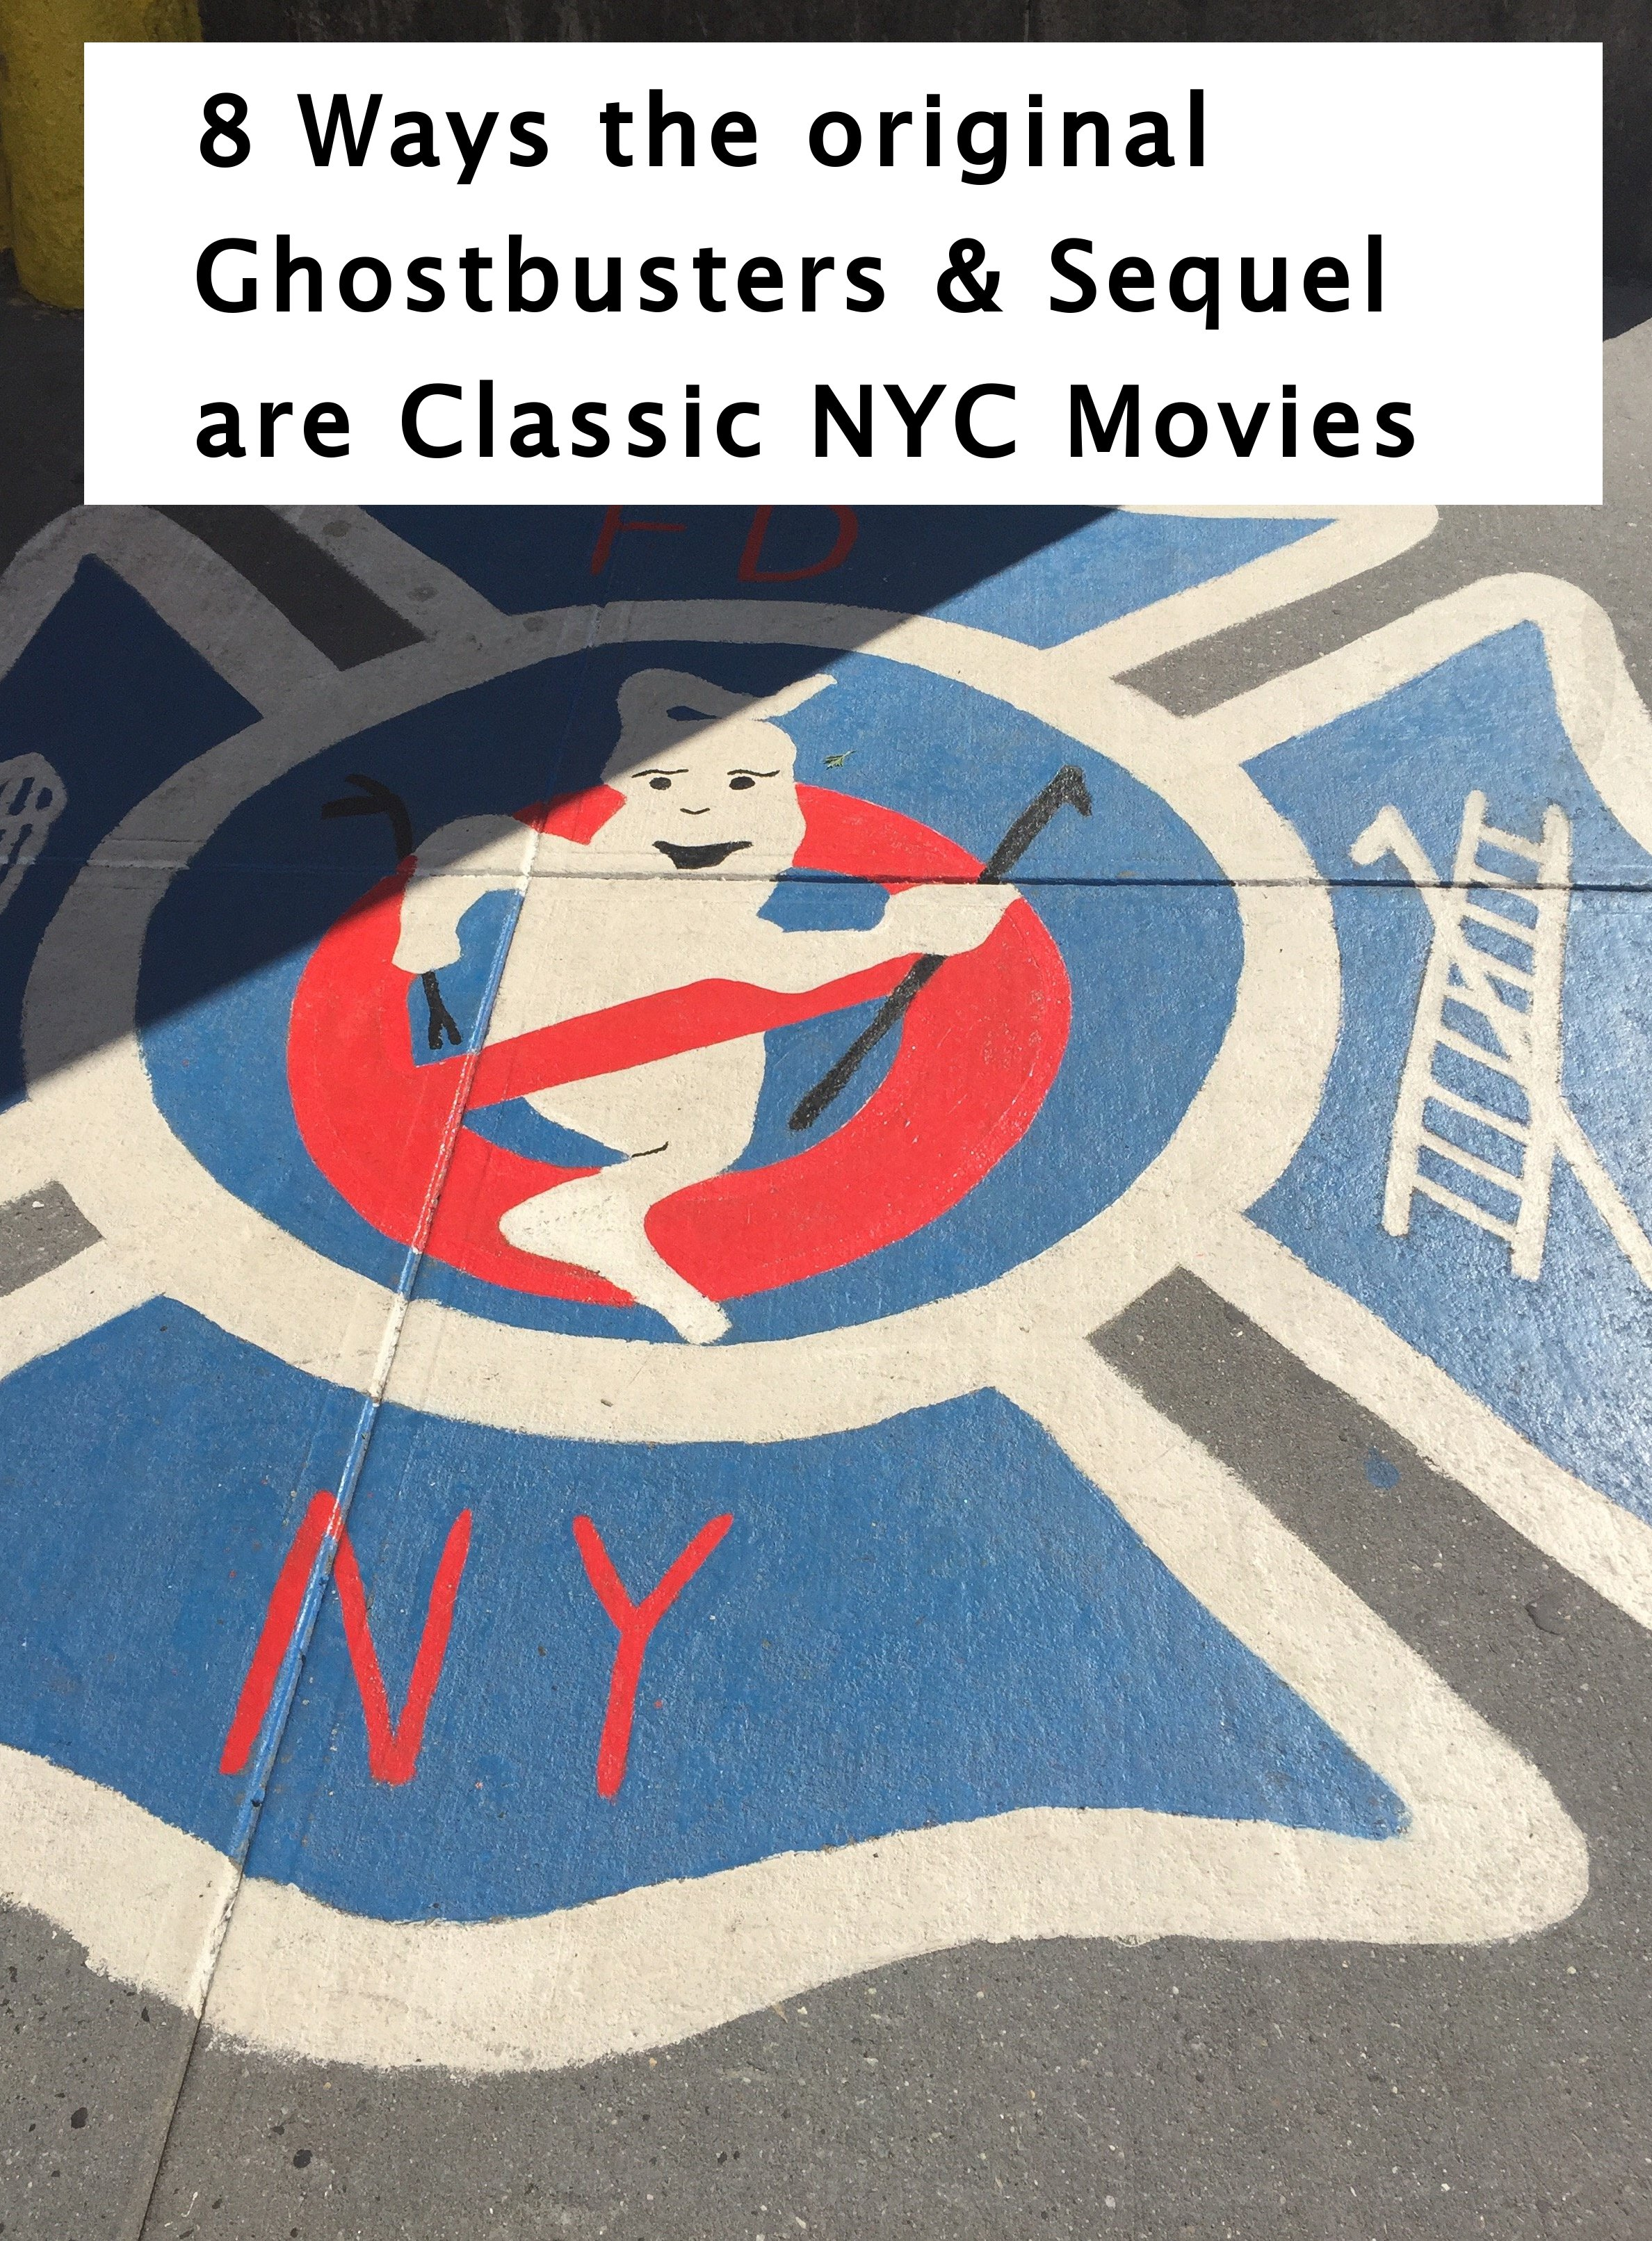 original ghostbusters, ghostbusters remake, movie reviews, old movies, nyc iconic landmarks,